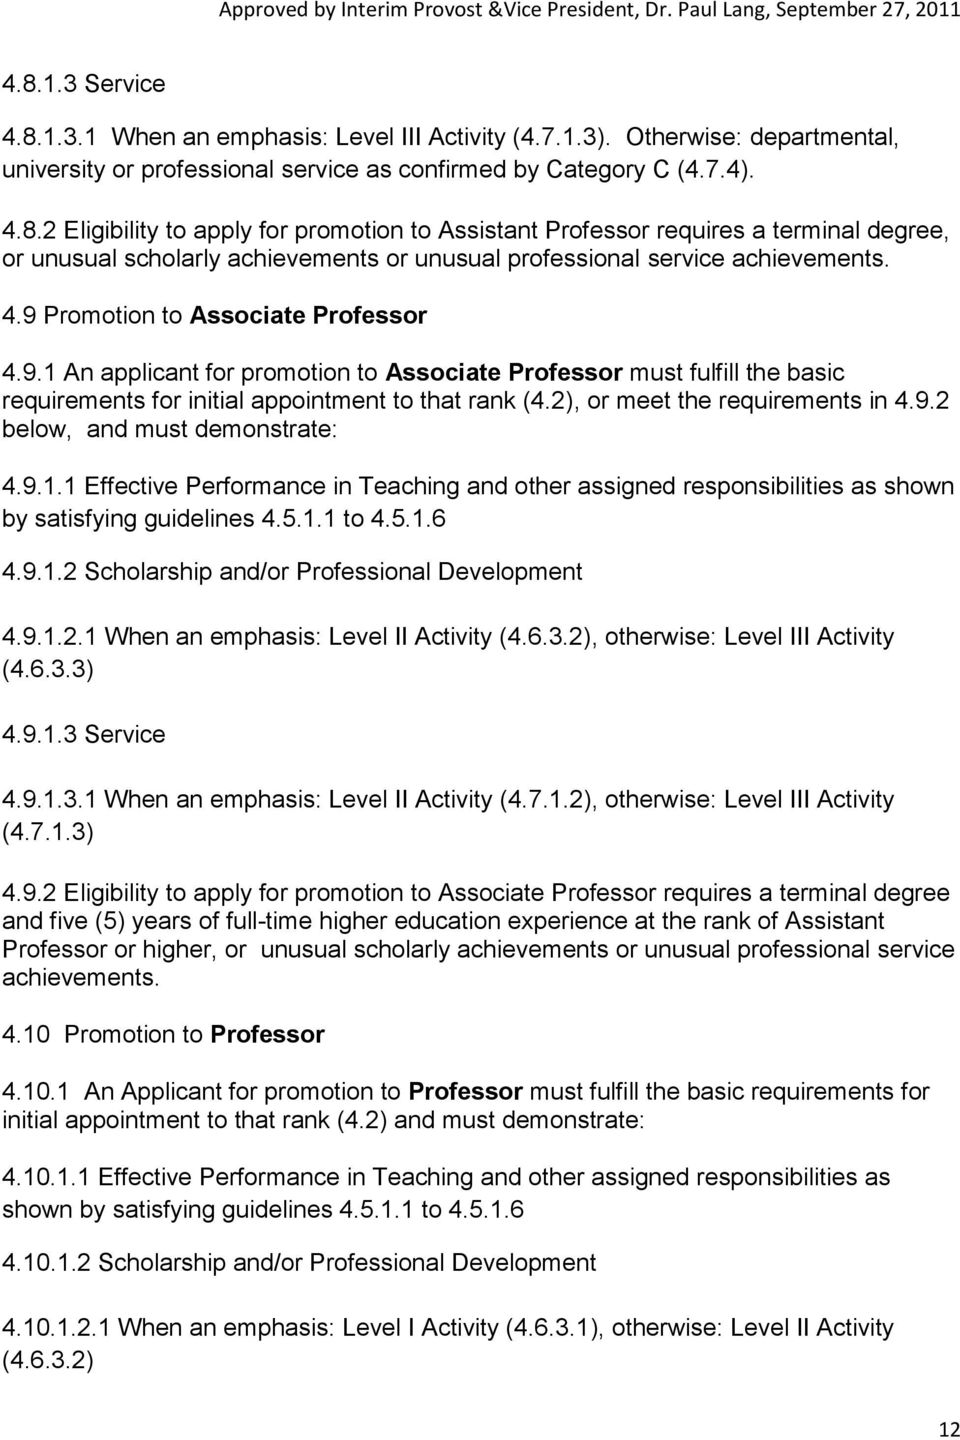 2), or meet the requirements in 4.9.2 below, and must demonstrate: 4.9.1.1 Effective Performance in Teaching and other assigned responsibilities as shown by satisfying guidelines 4.5.1.1 to 4.5.1.6 4.